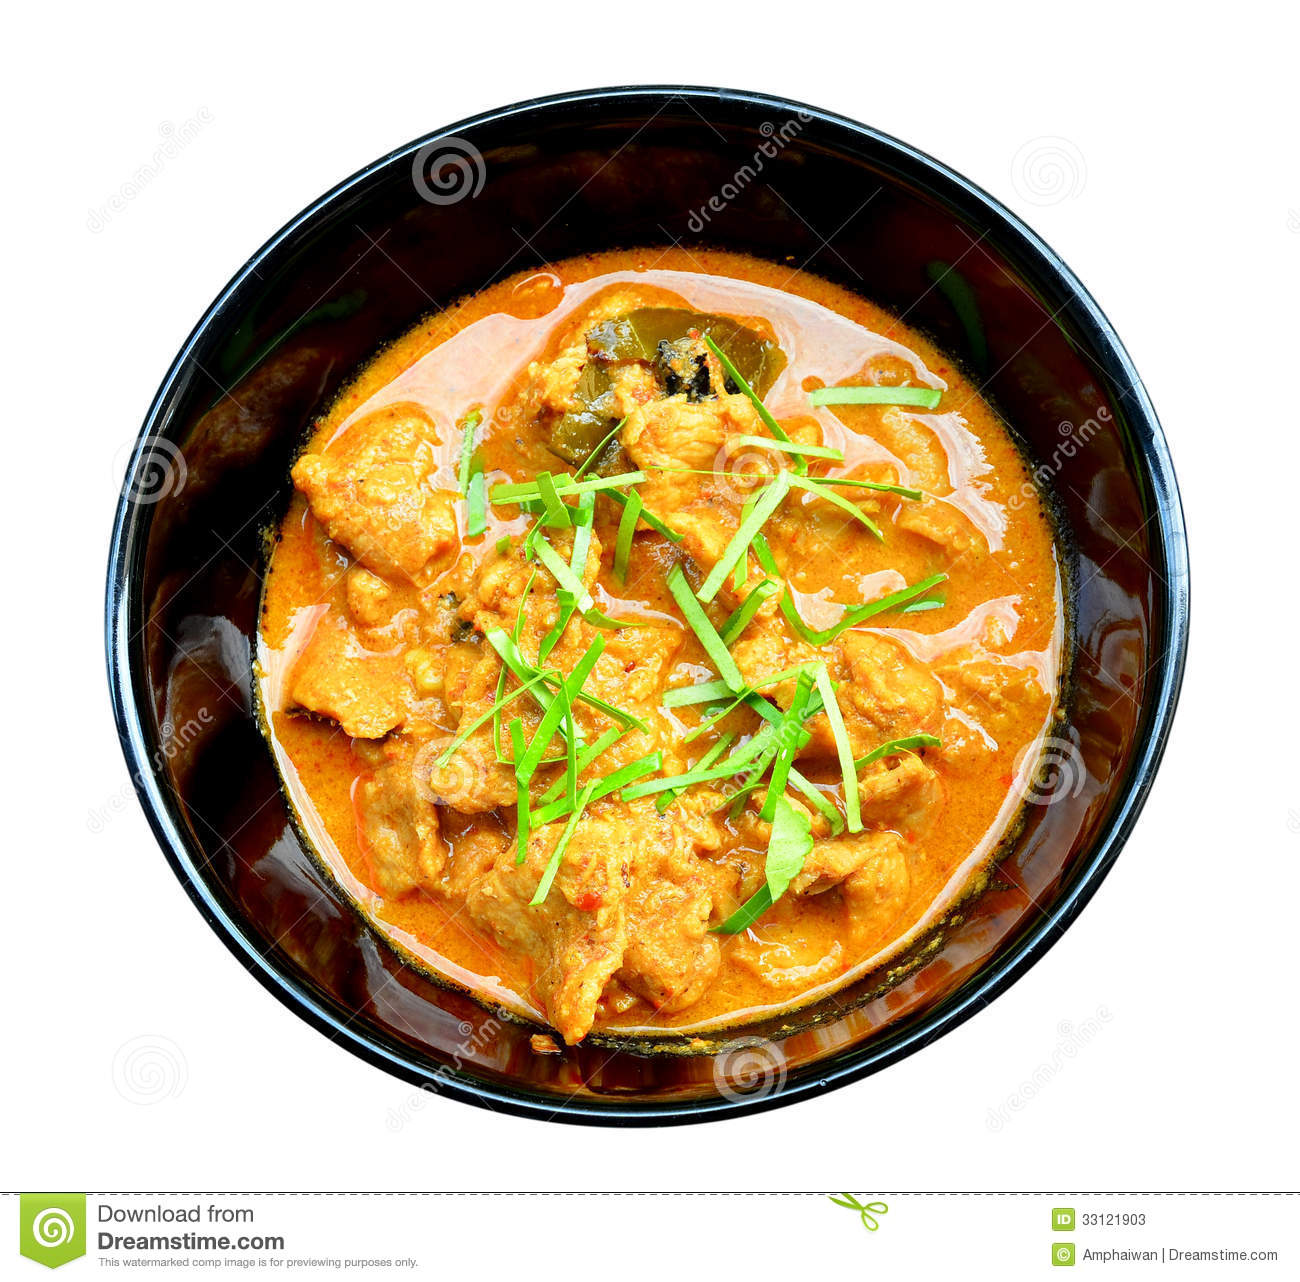 Panang Curry with Beef Recipe (Panang Neua),thai food.